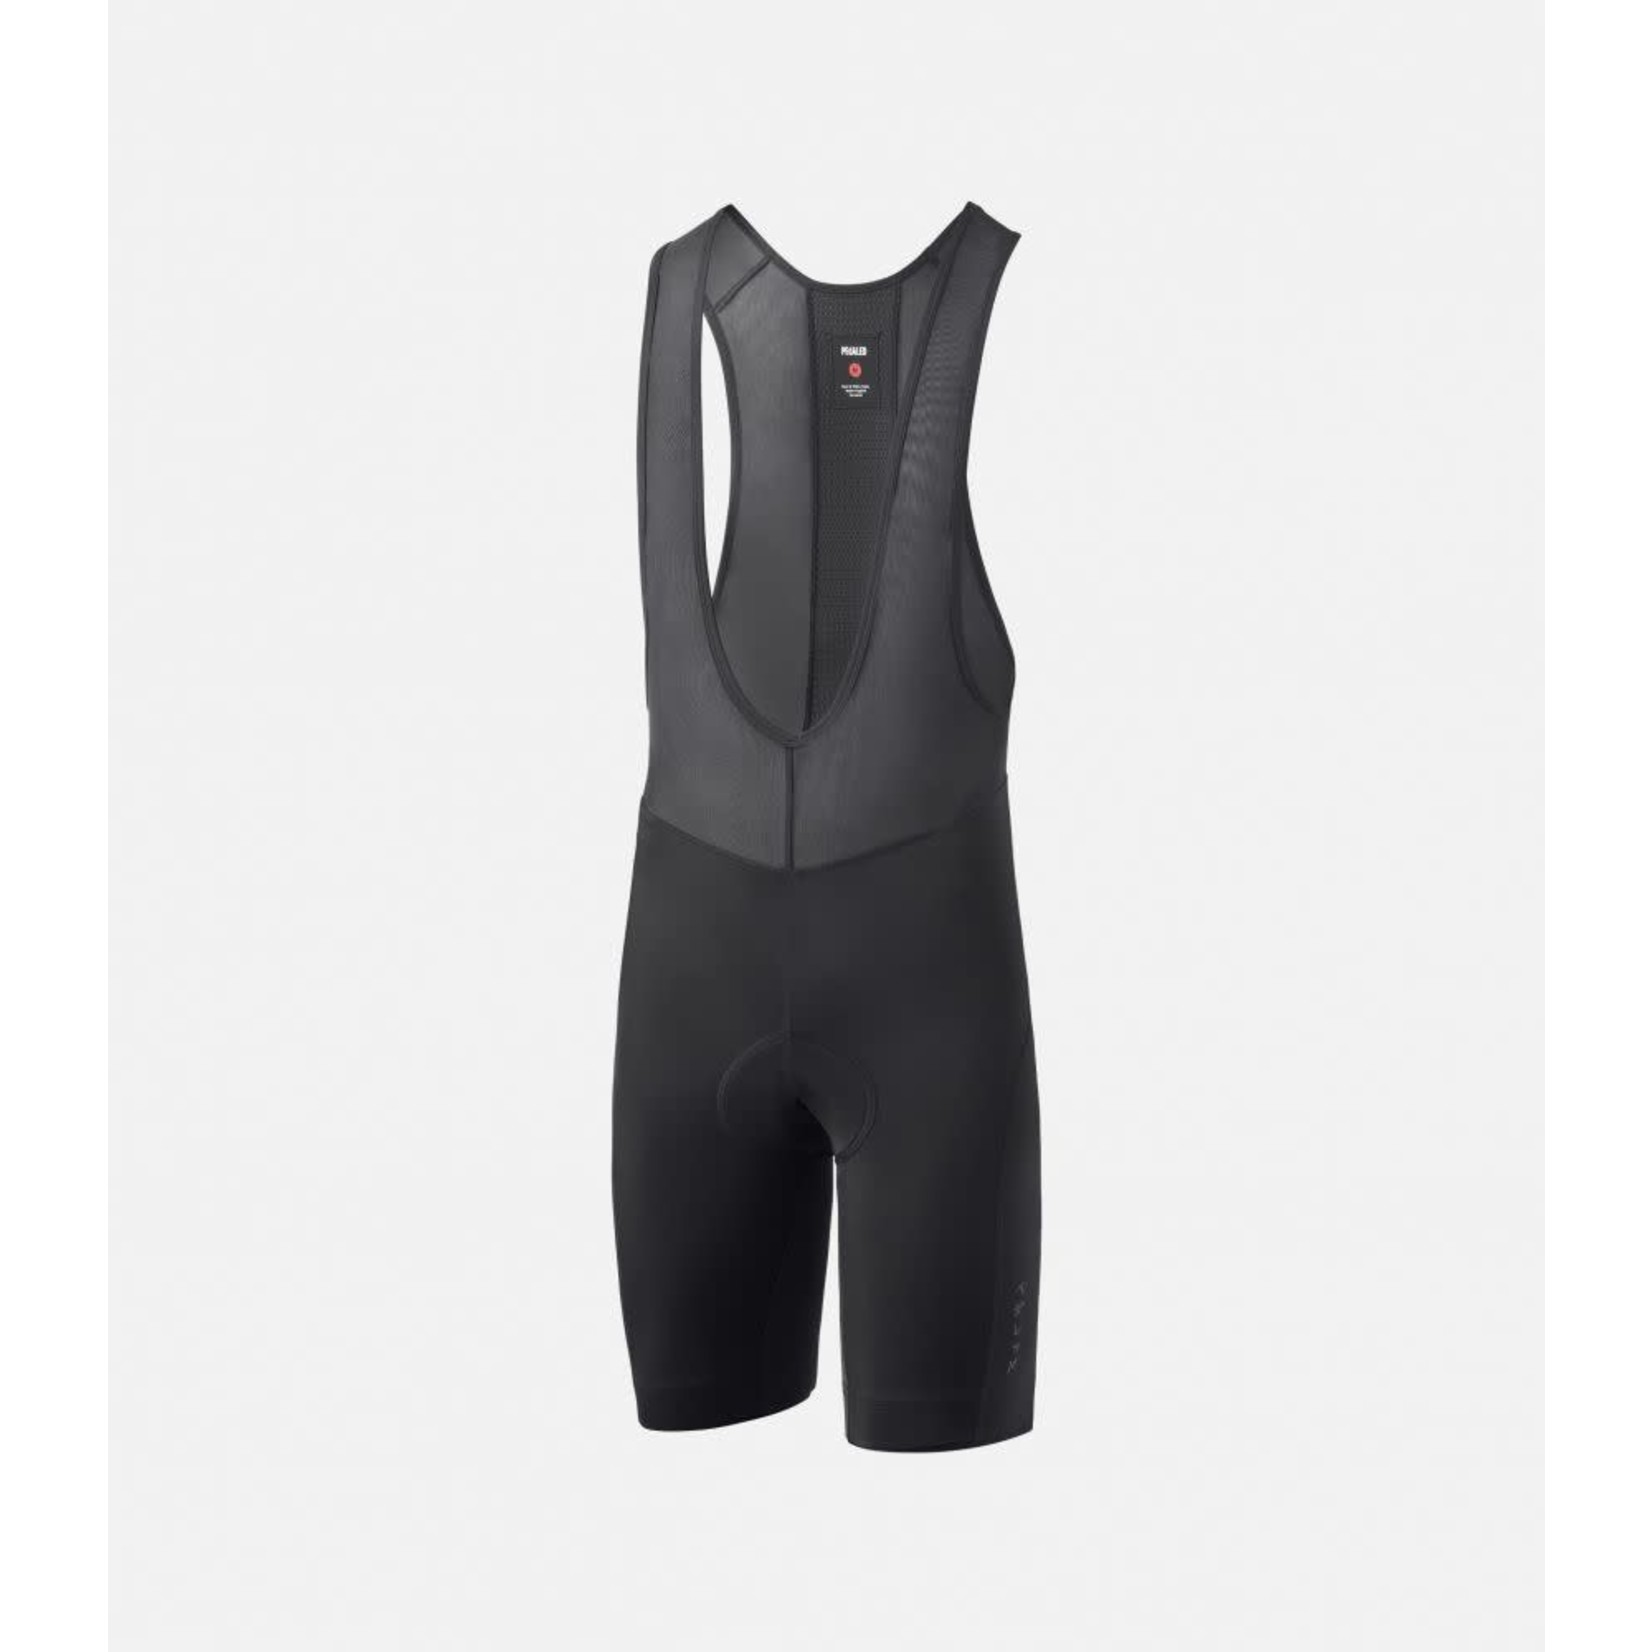 PEdALED PEdALED Essential bibshorts S black